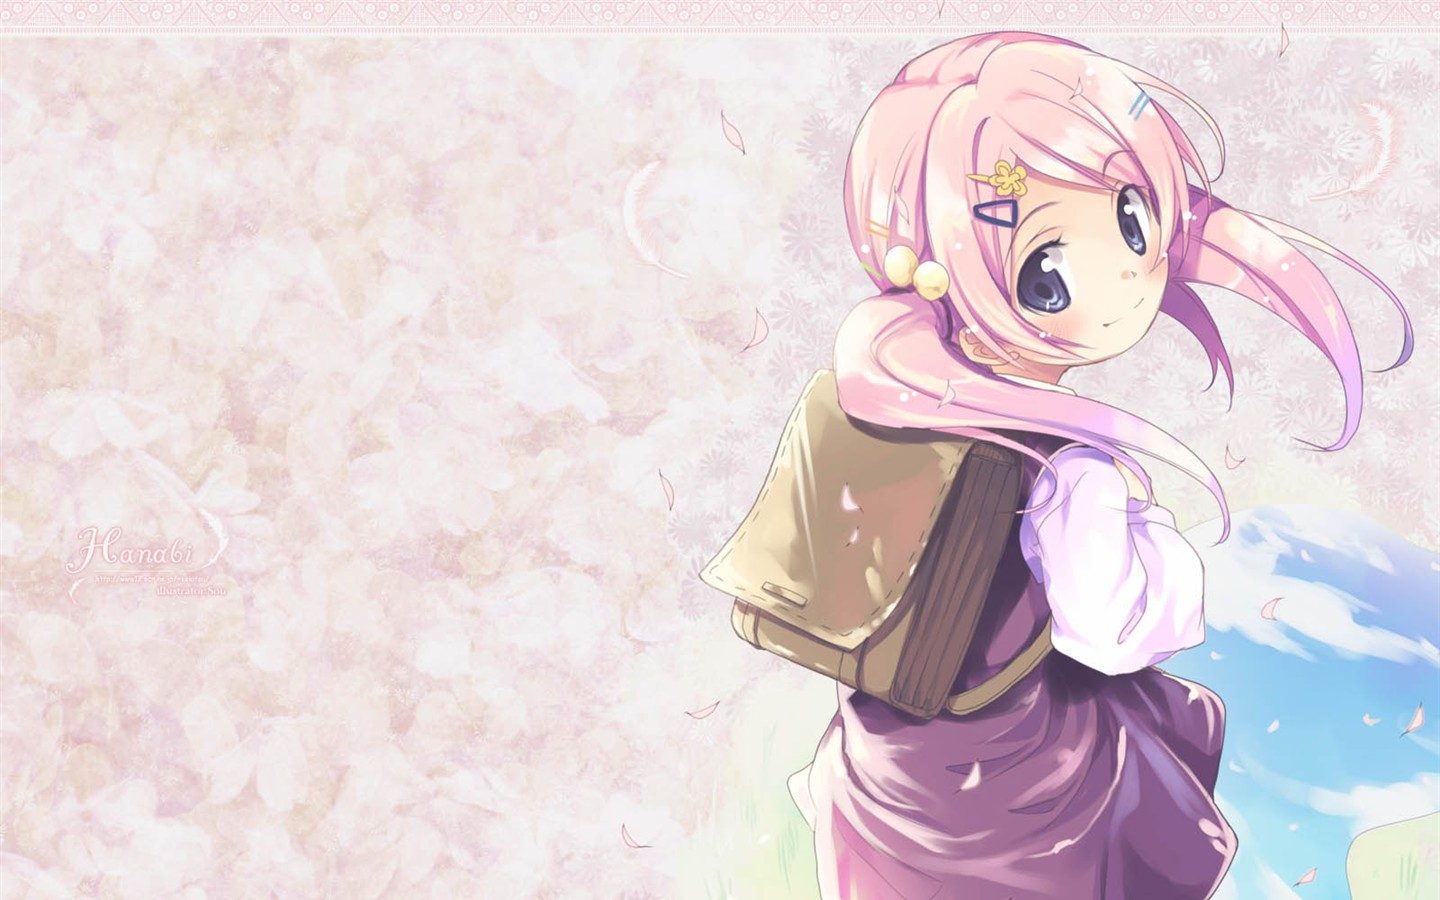 Beautiful Anime Wallpaper   Anime Wallpapers   V3 Wallpaper Site 1440x900